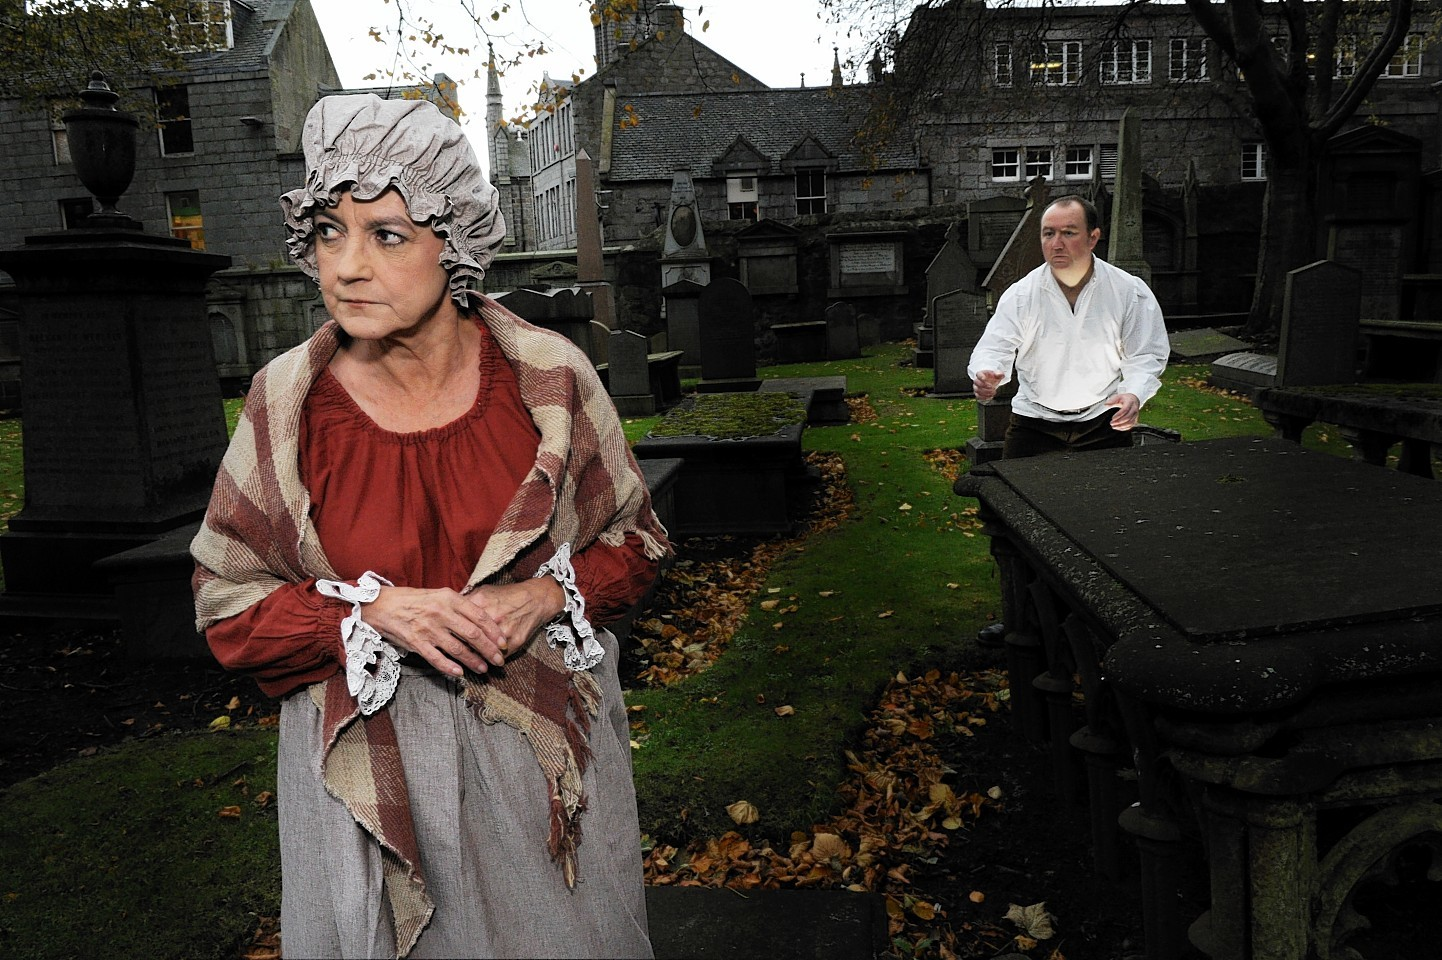 The grave robbing scandal re-enacted at Aberdeen cemetery